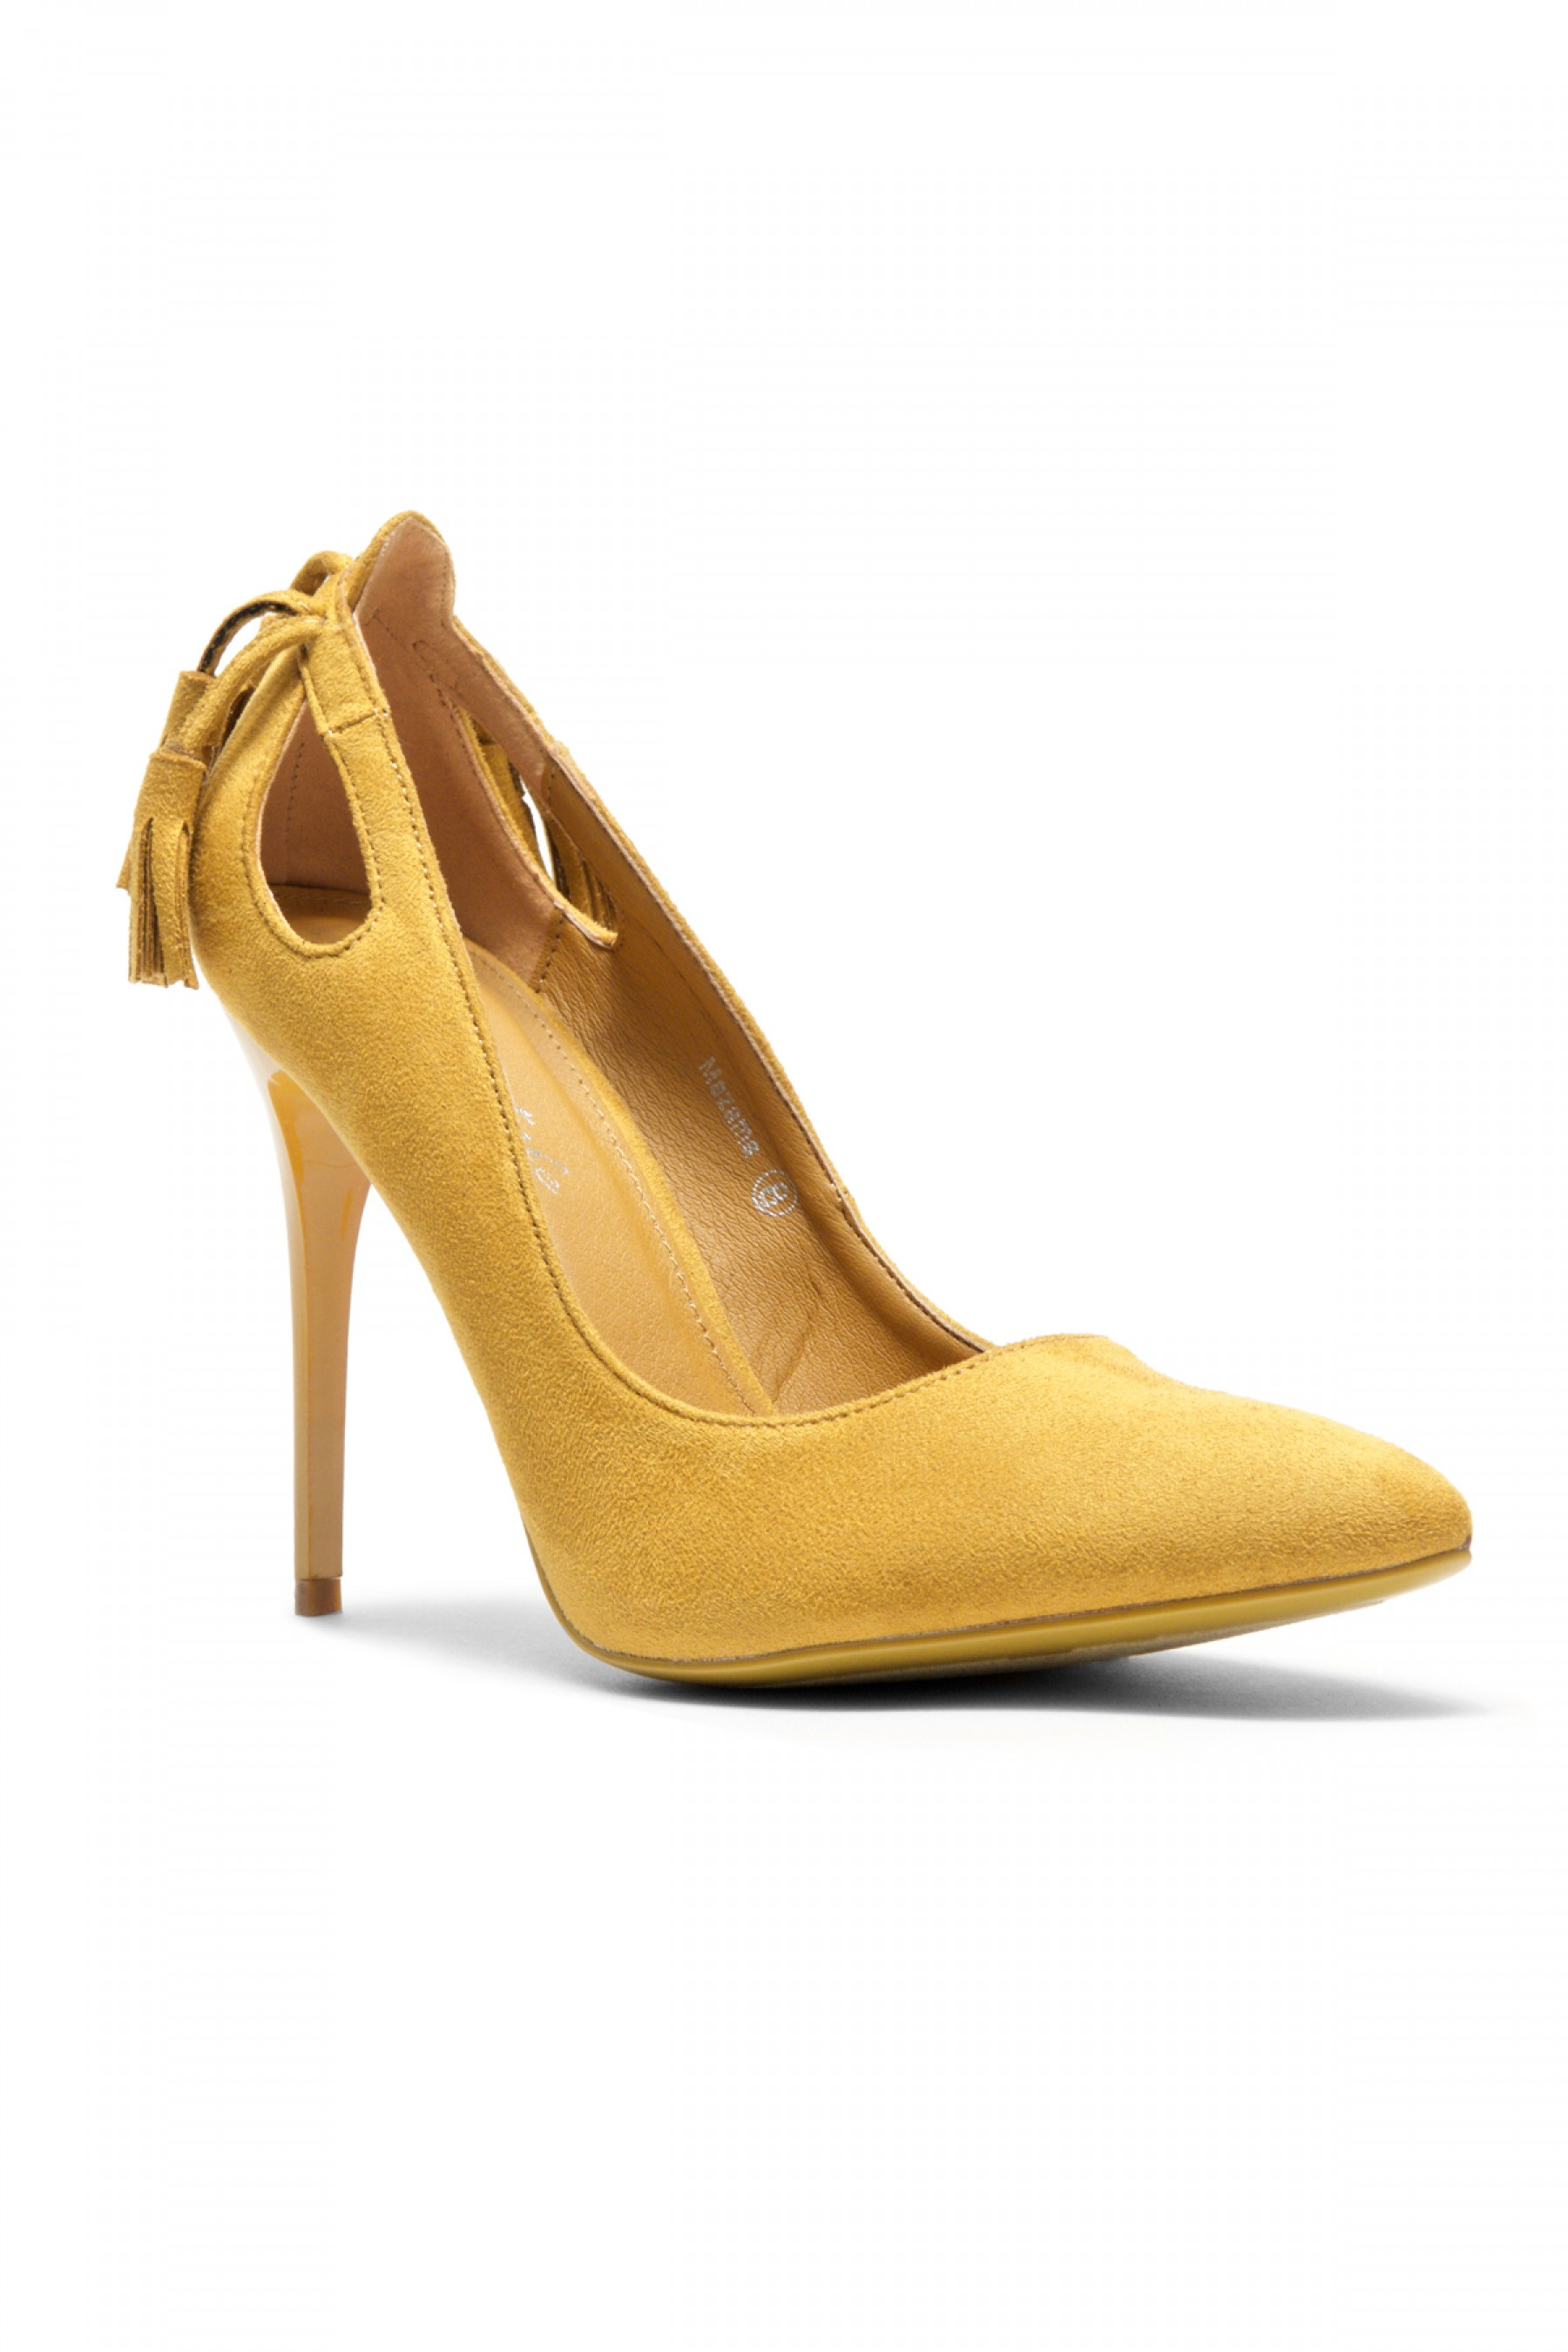 Women's Mustard Mazama 4-inch Pump Heel with Tassled Back